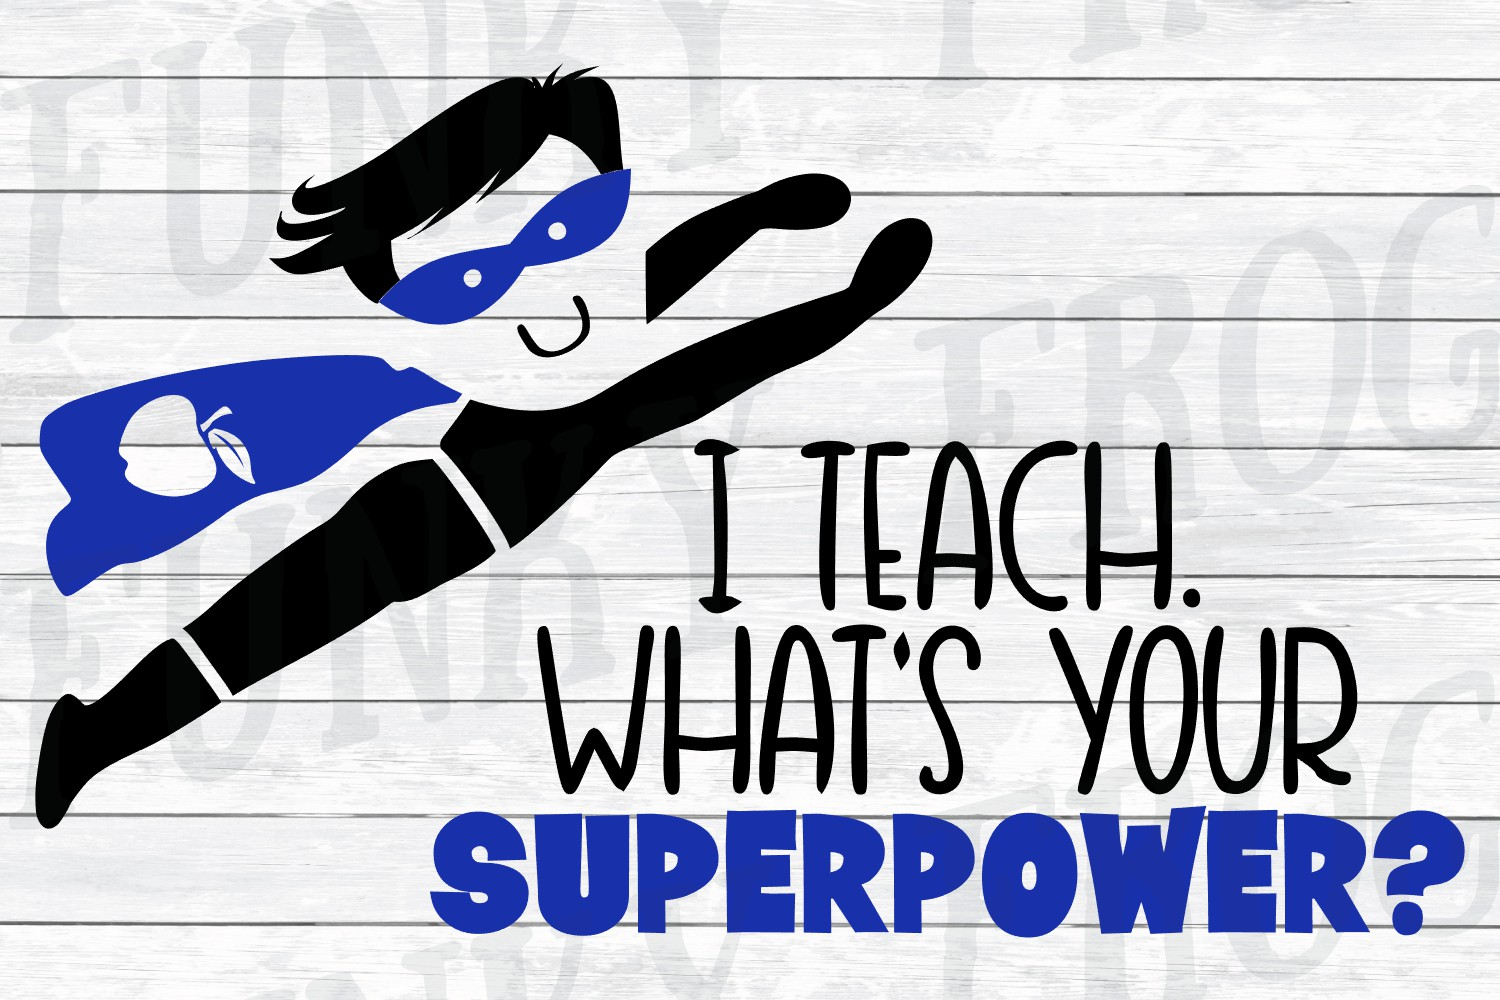 I Teach What's Your Superpower - Teacher SVG Cut File example image 2